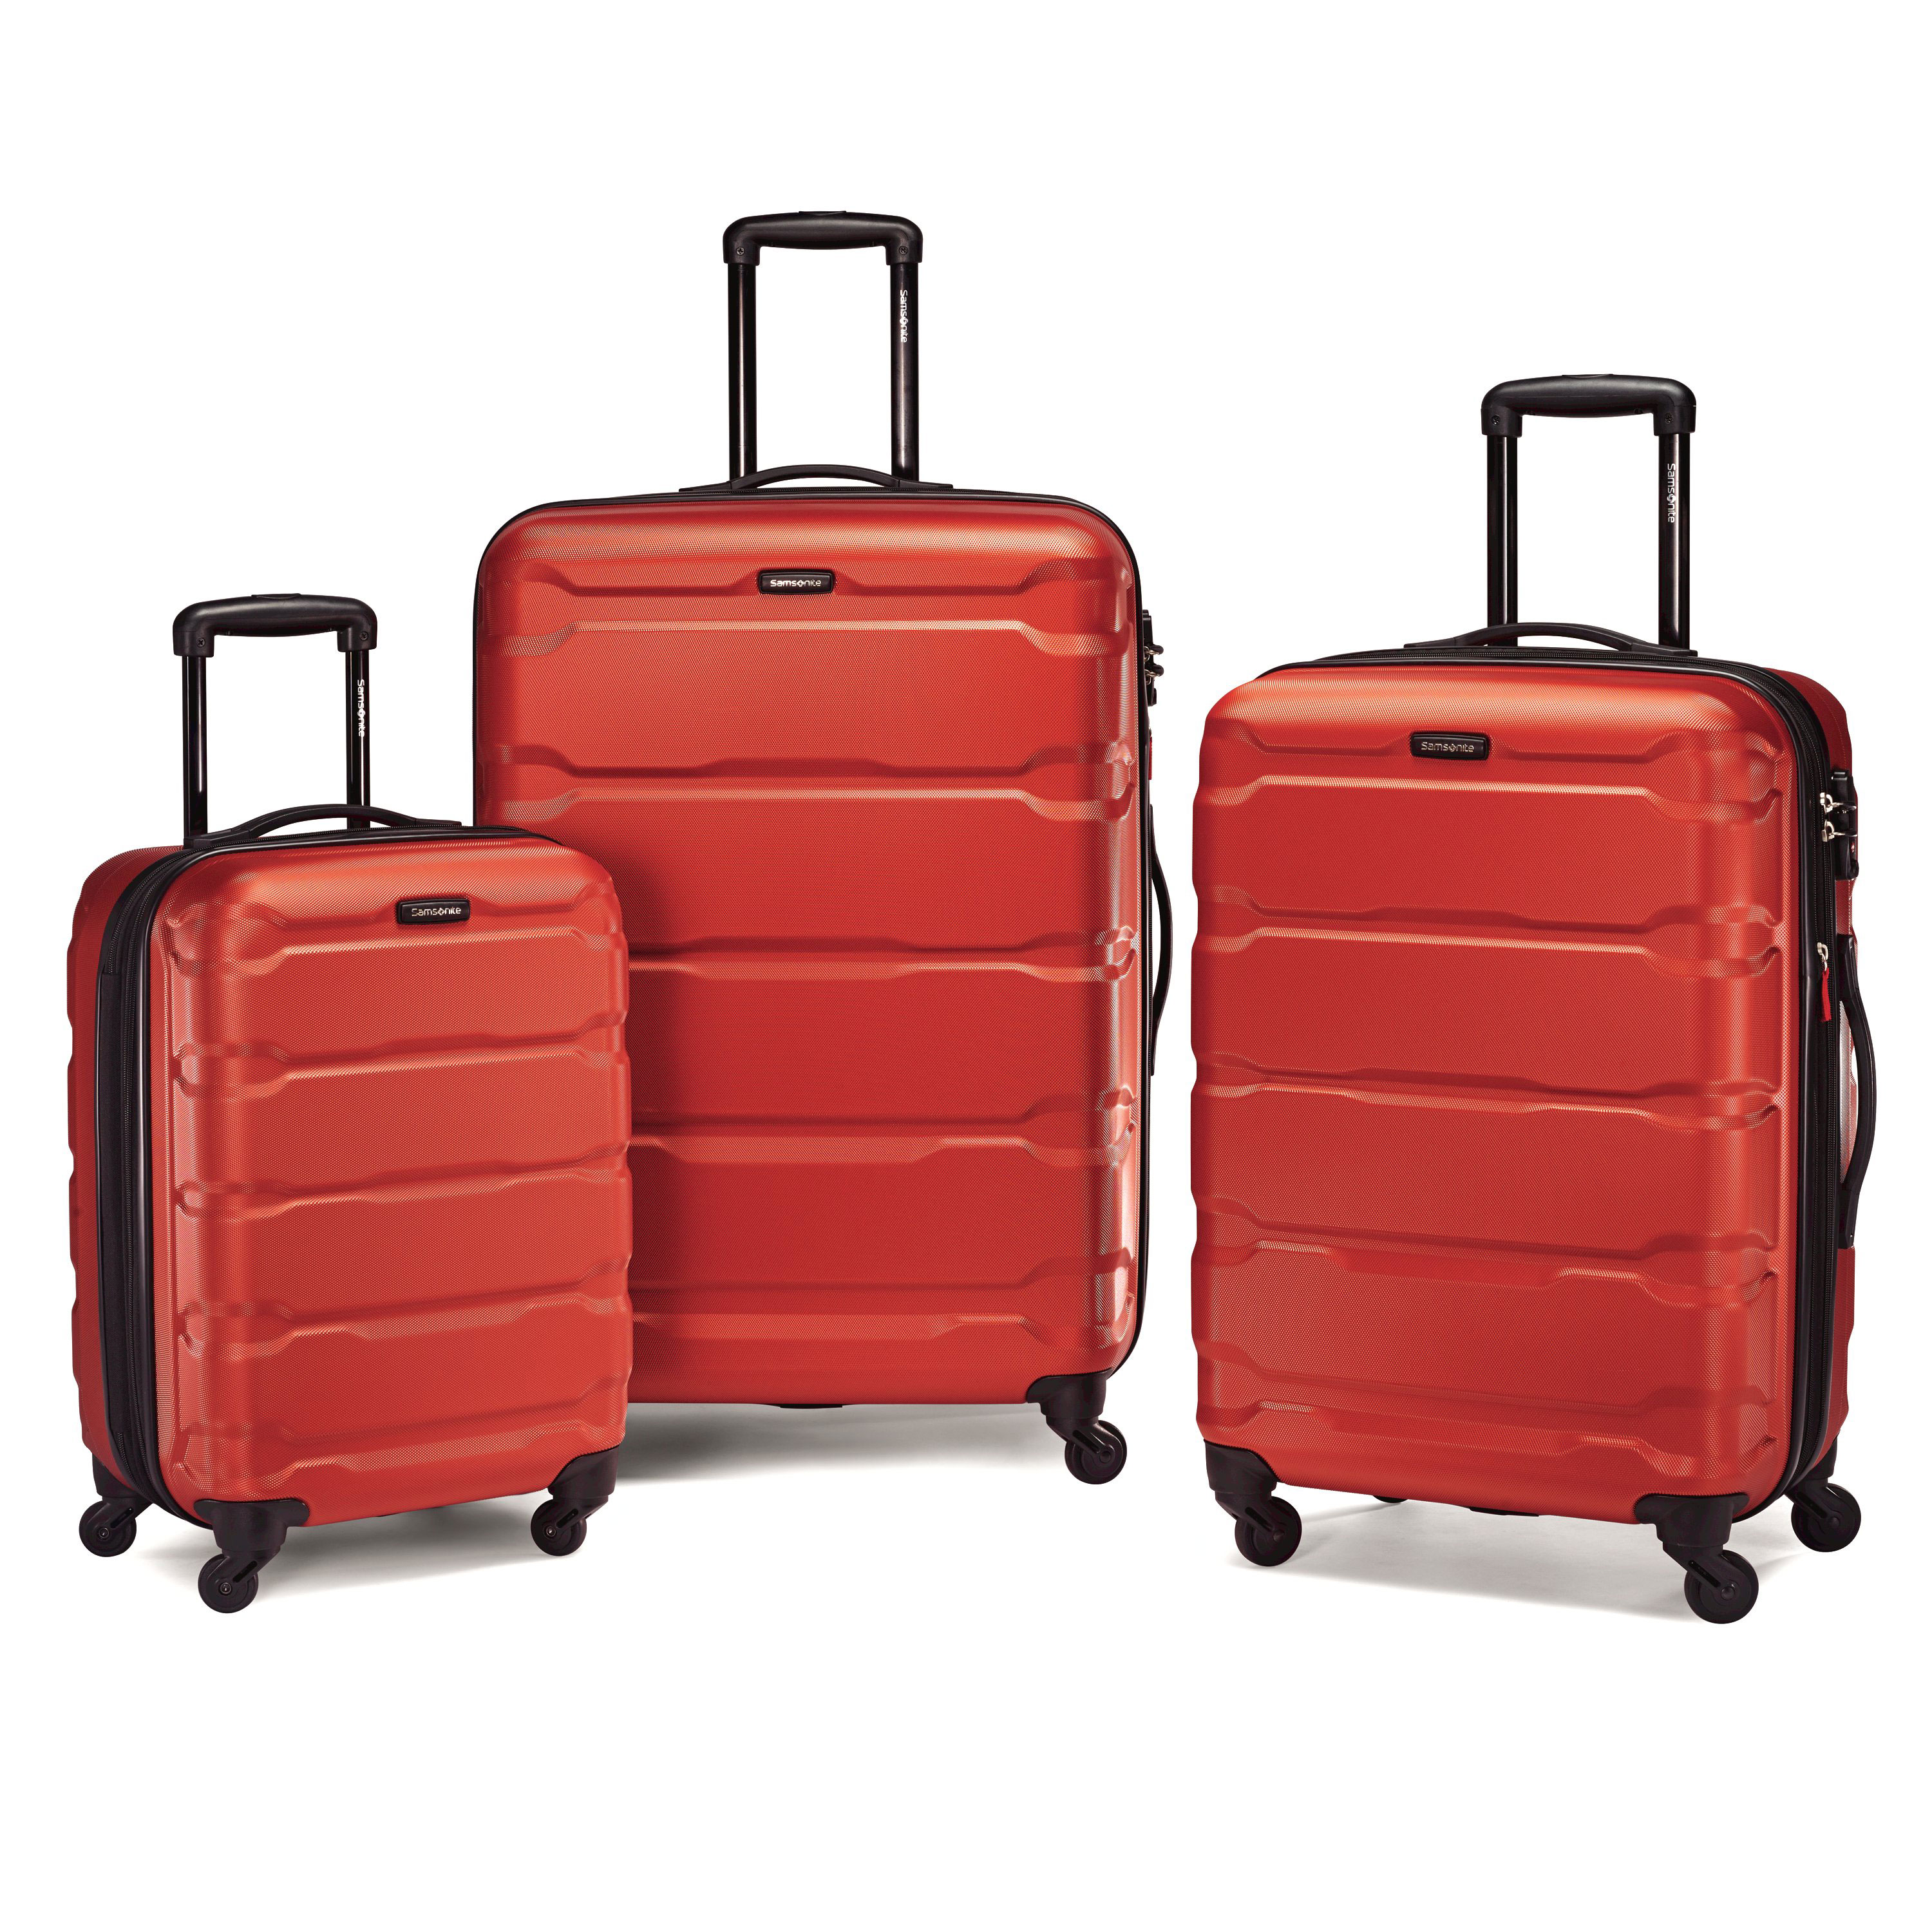 Samsonite suitcases hold all your essentials when you're on the go.